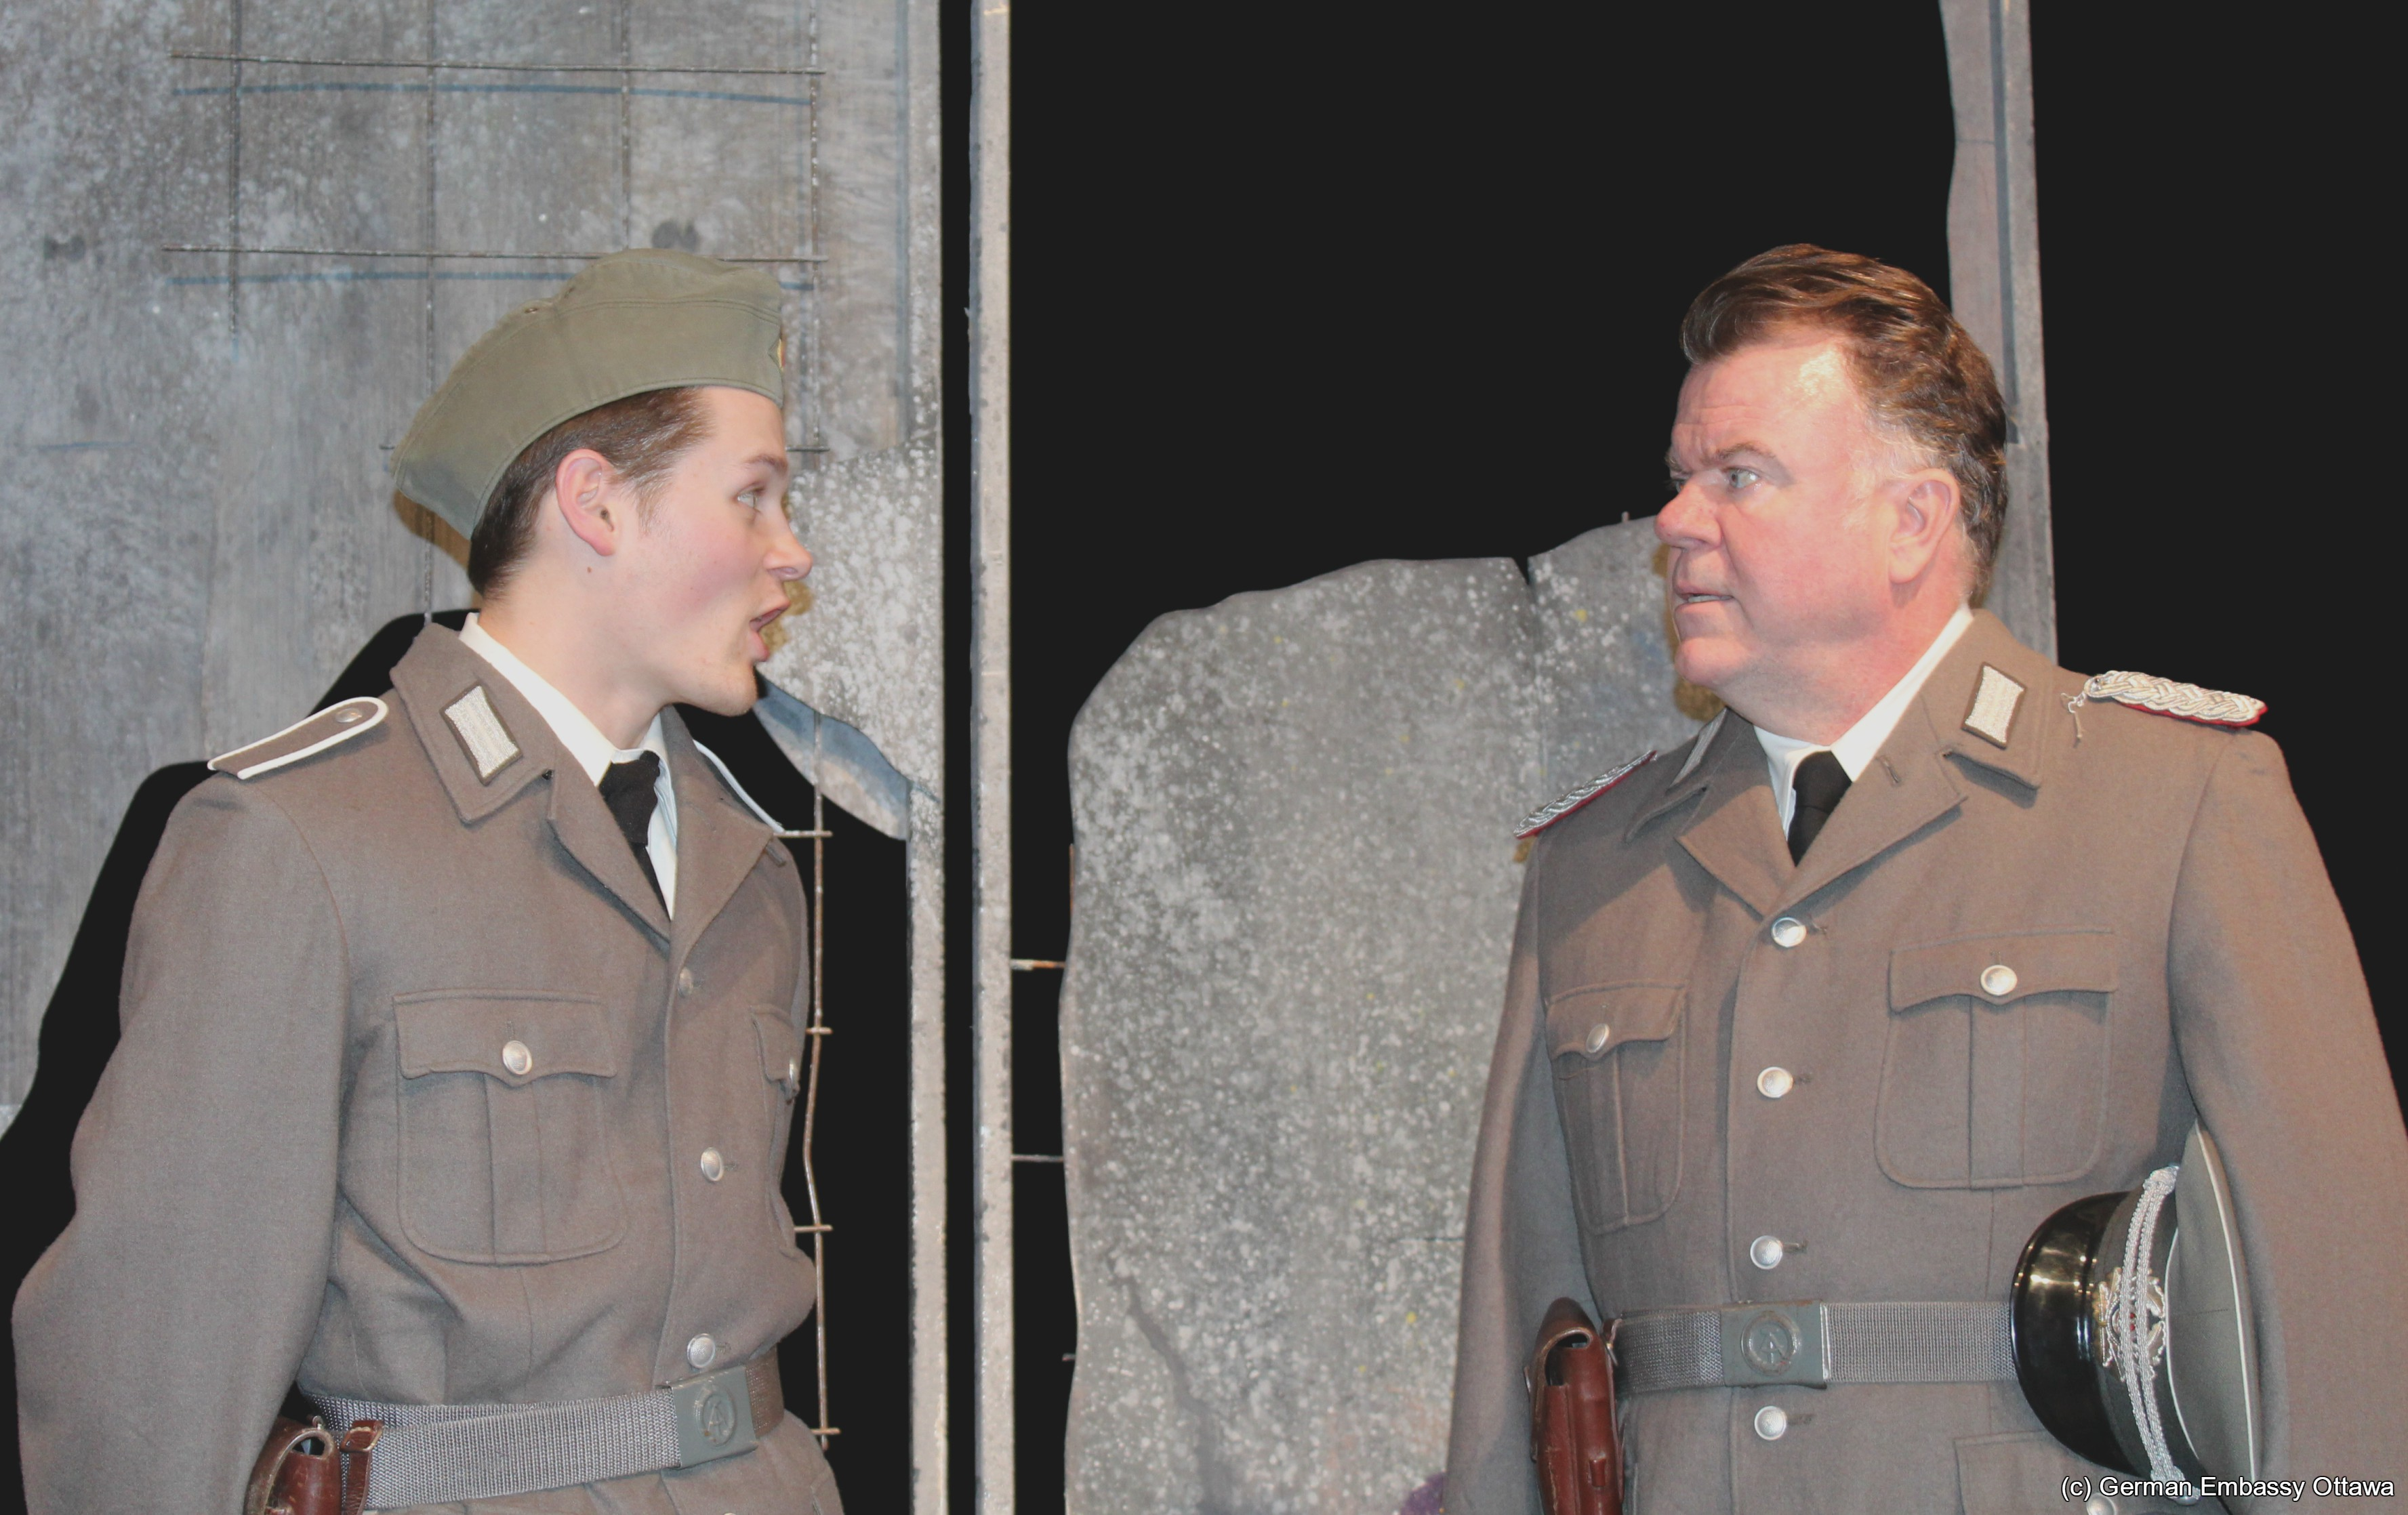 Canadian play about Berlin Wall premieres in Ottawa